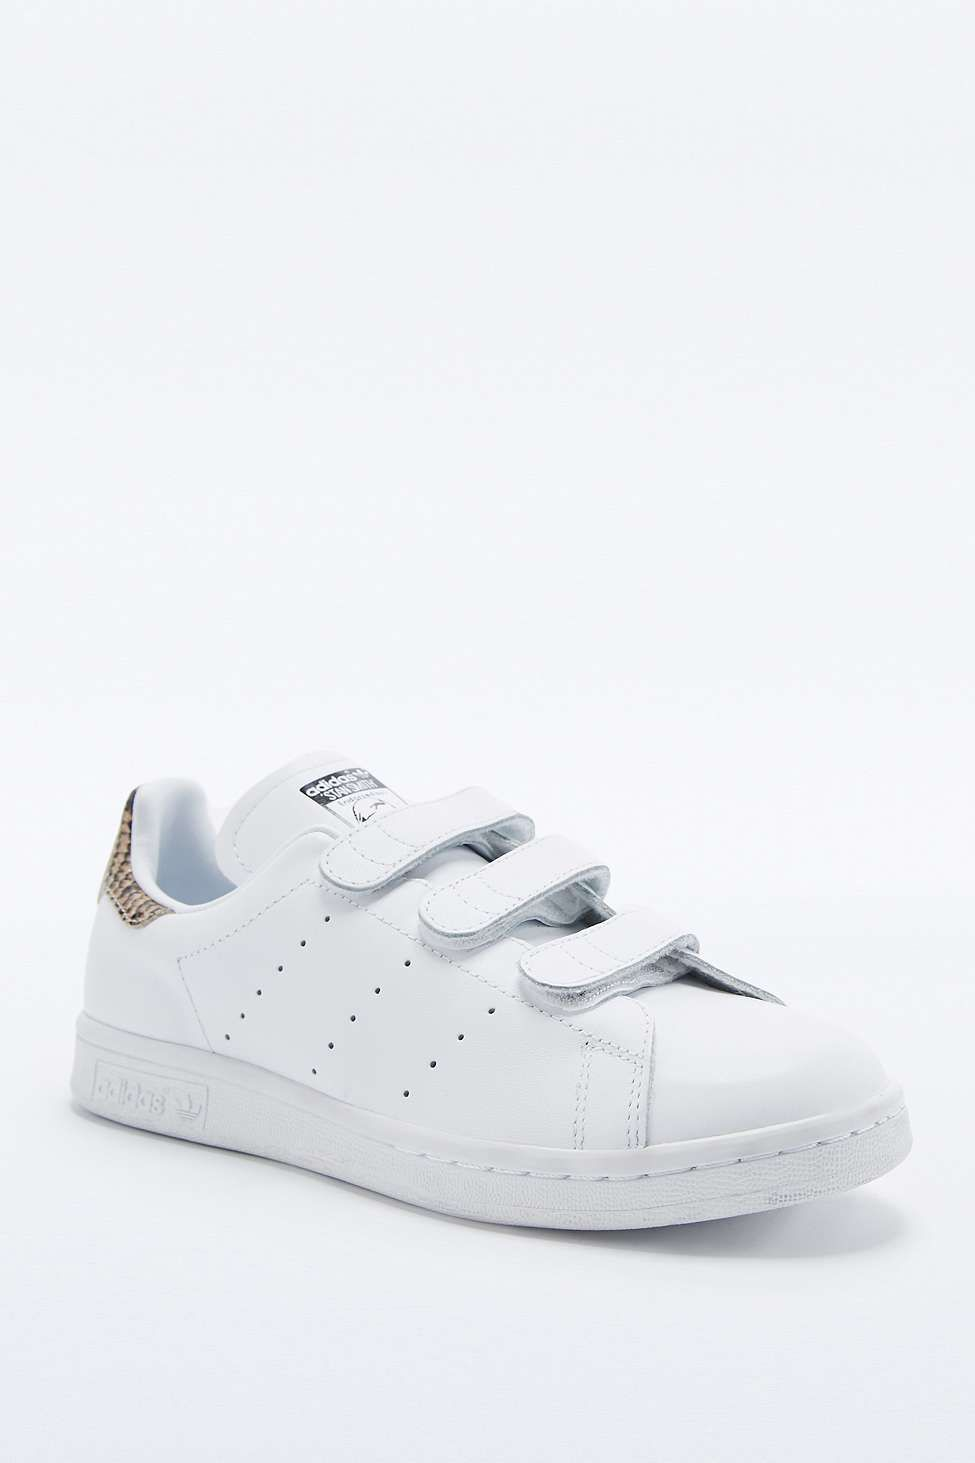 adidas Originals White Snake Velcro Stan Smith Trainers